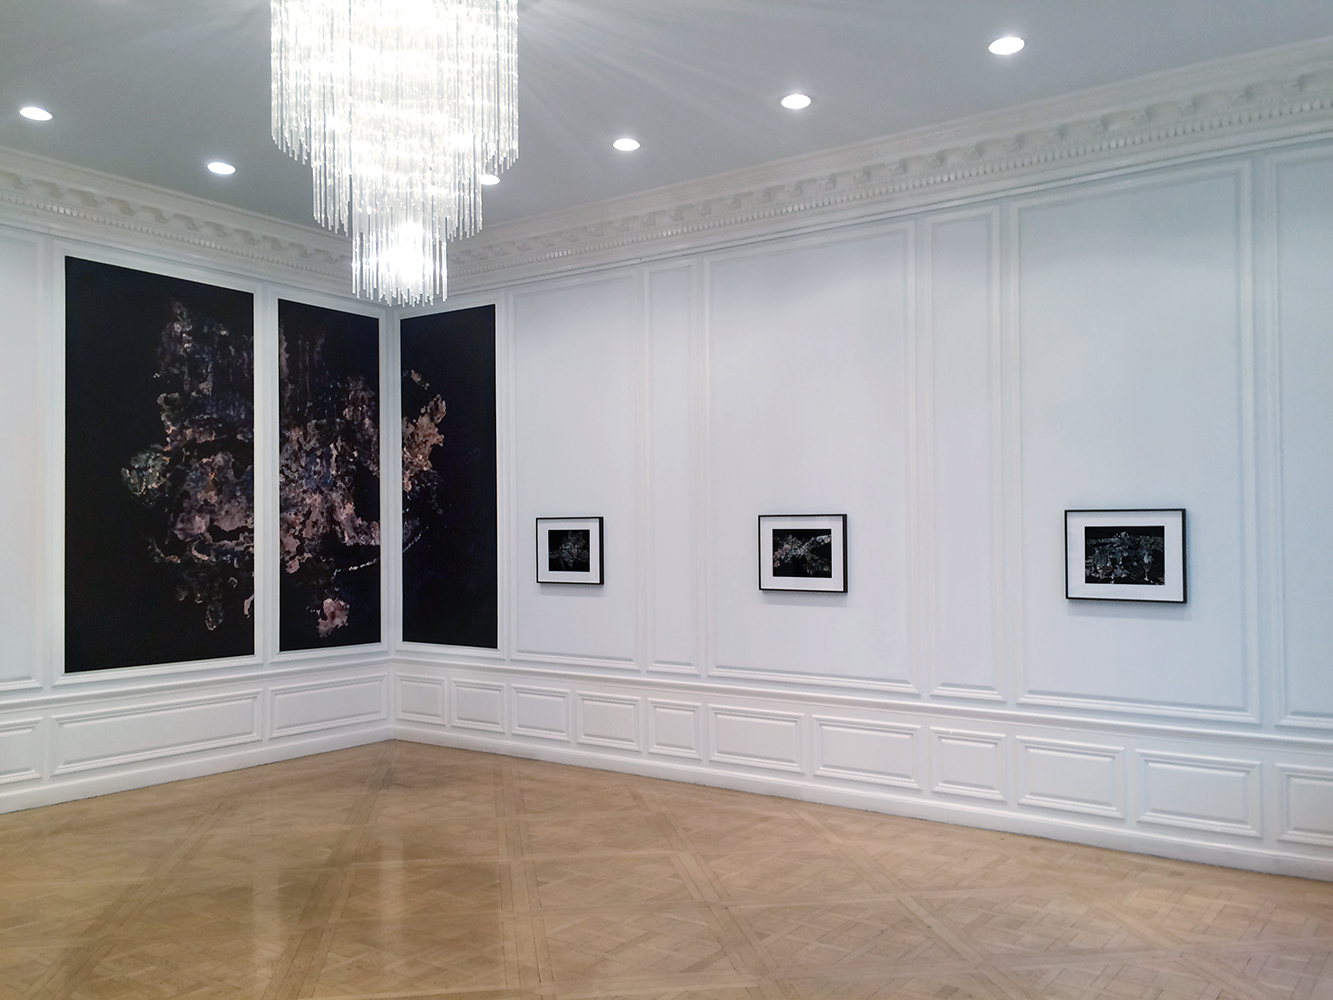 Installation View:  Goethe House – 1014 Fifth Avenue, New York  Stuck Together Pieces!,  2016-17 © Elias Wessel